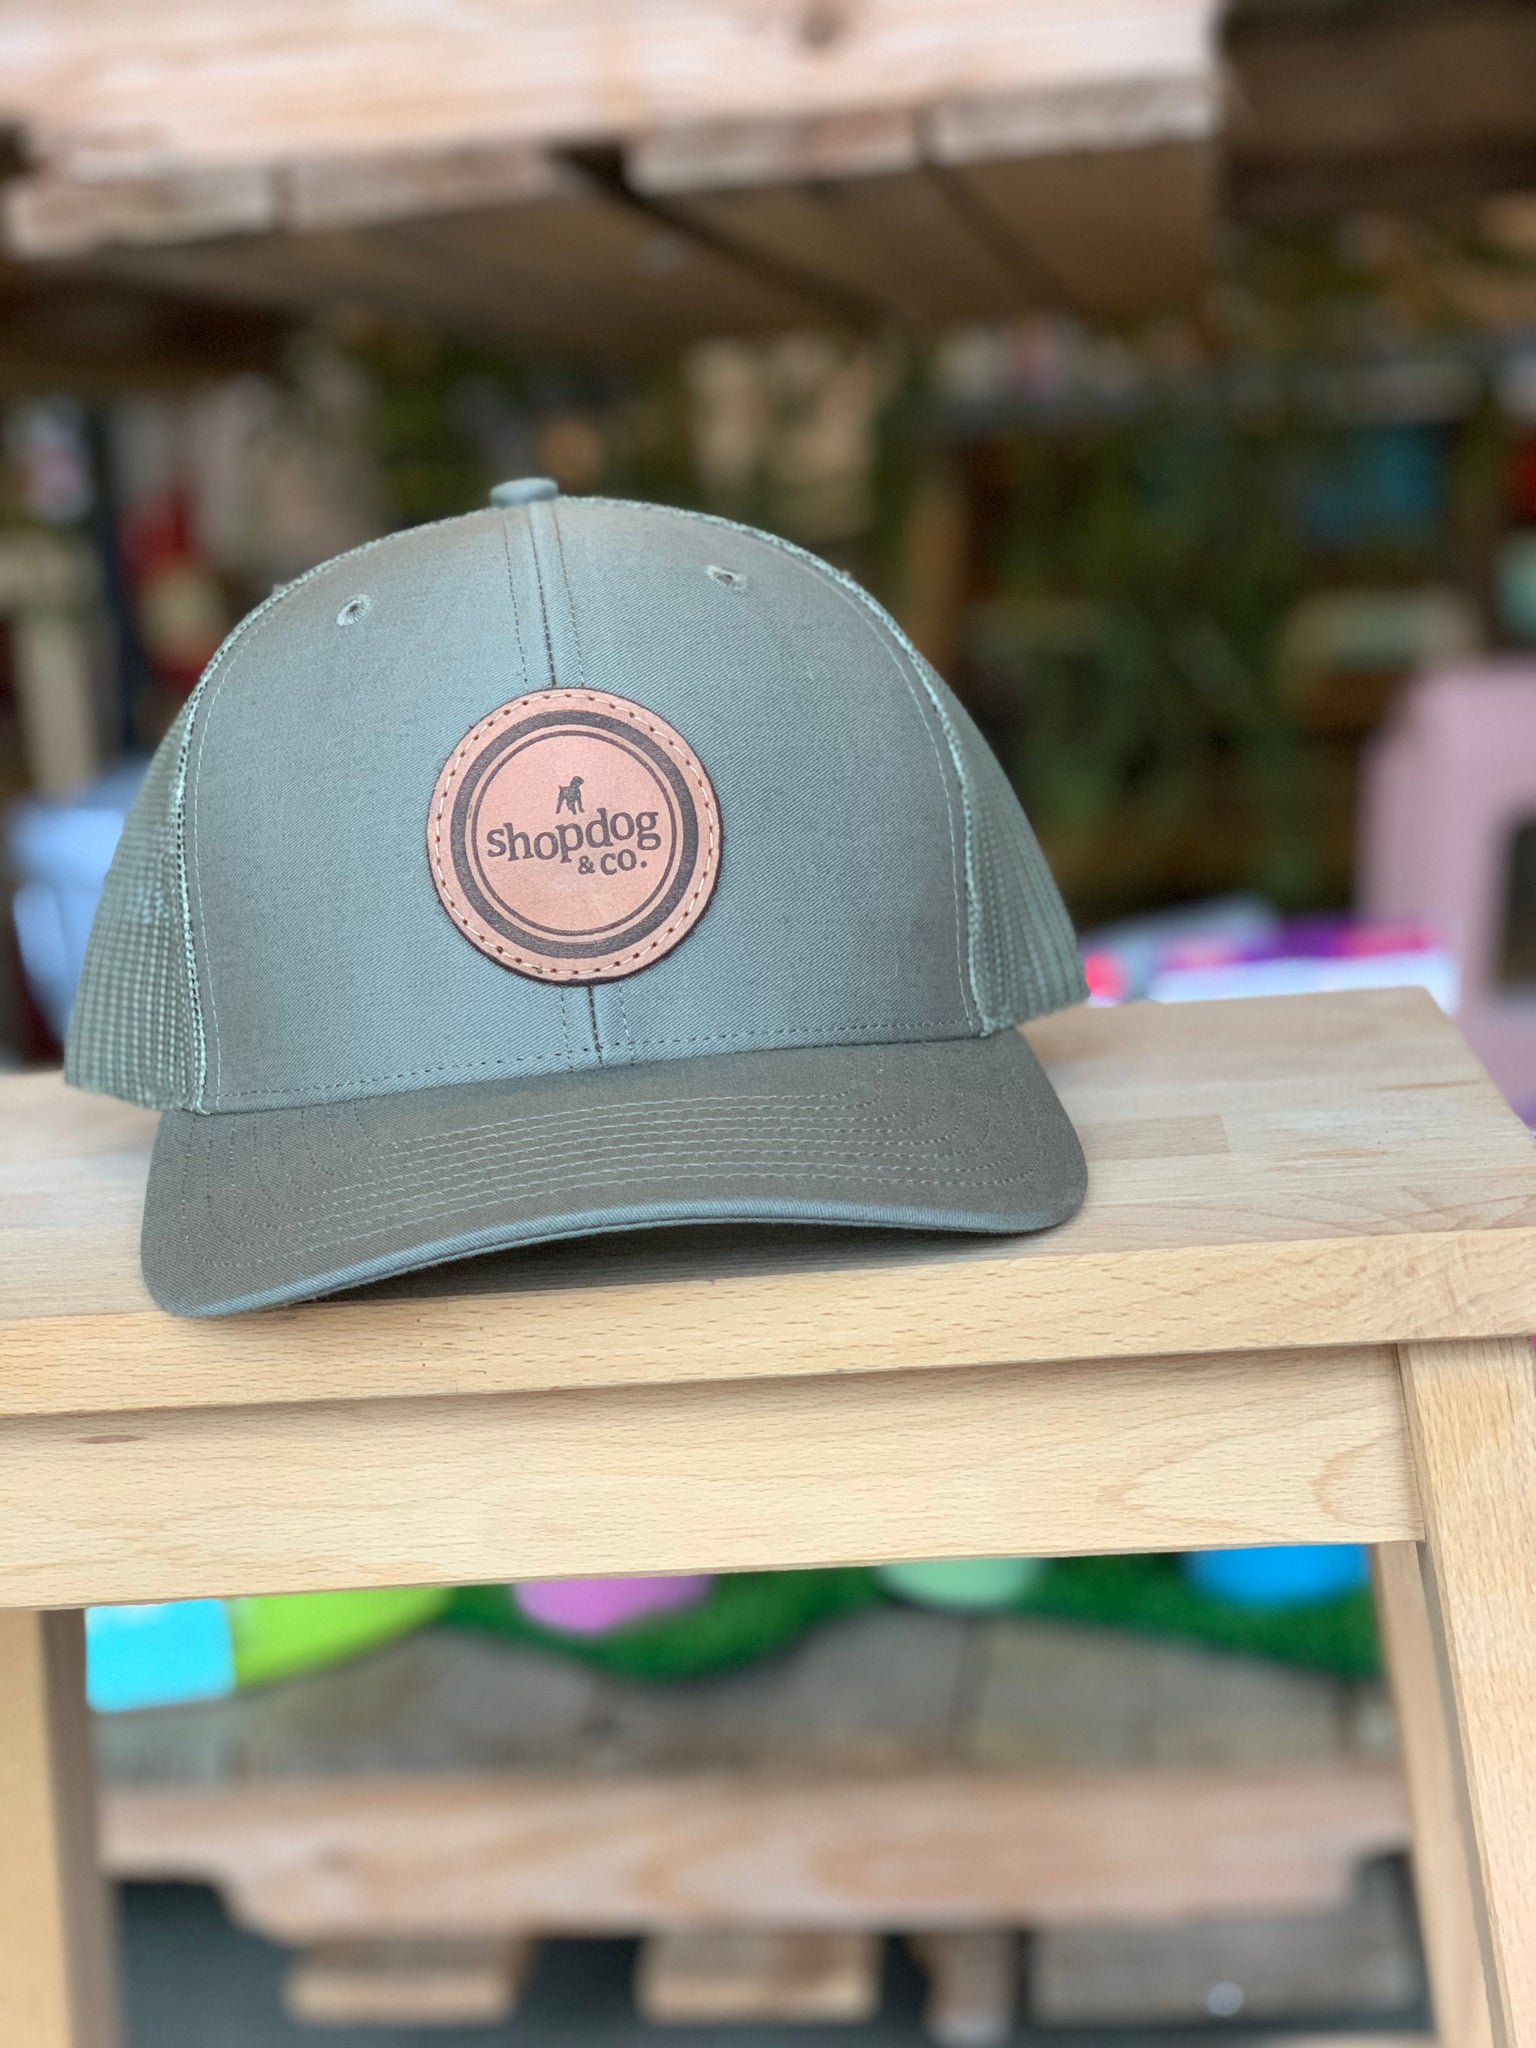 Shop Dog & Co. Baseball Cap